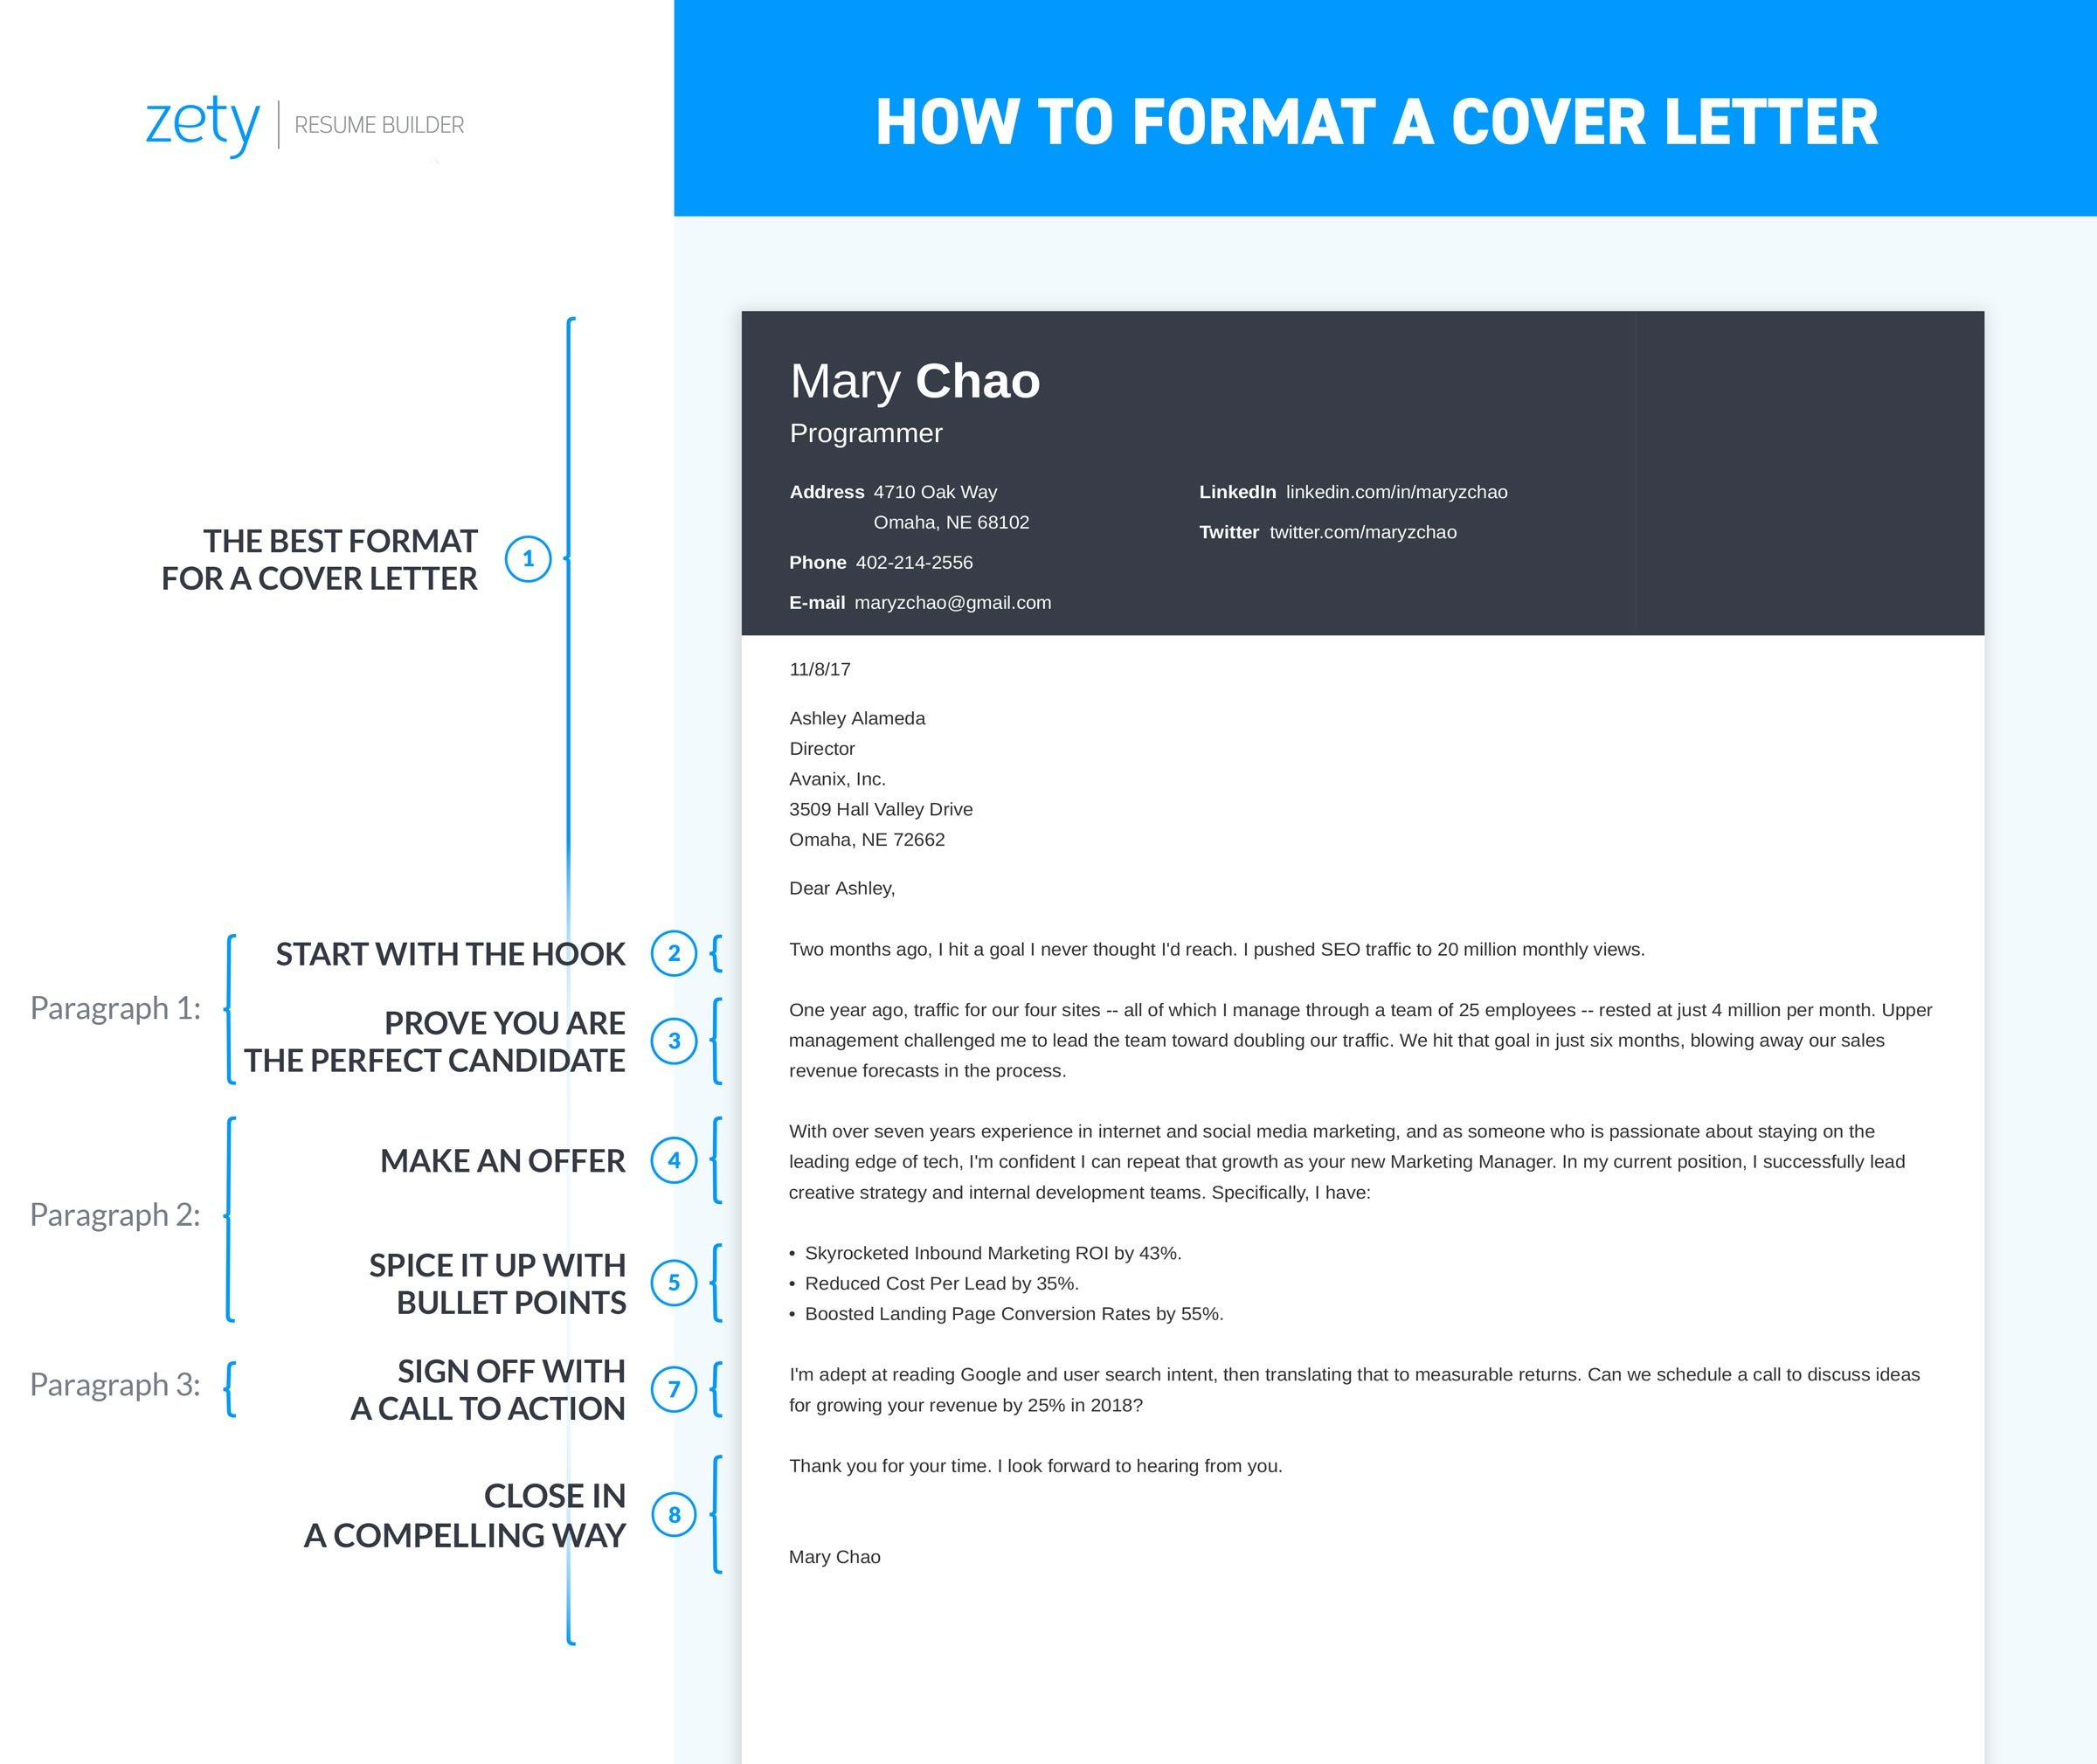 Proper Cover Letter Format: How-to Guide & 12+ Ready-to-Use Layouts